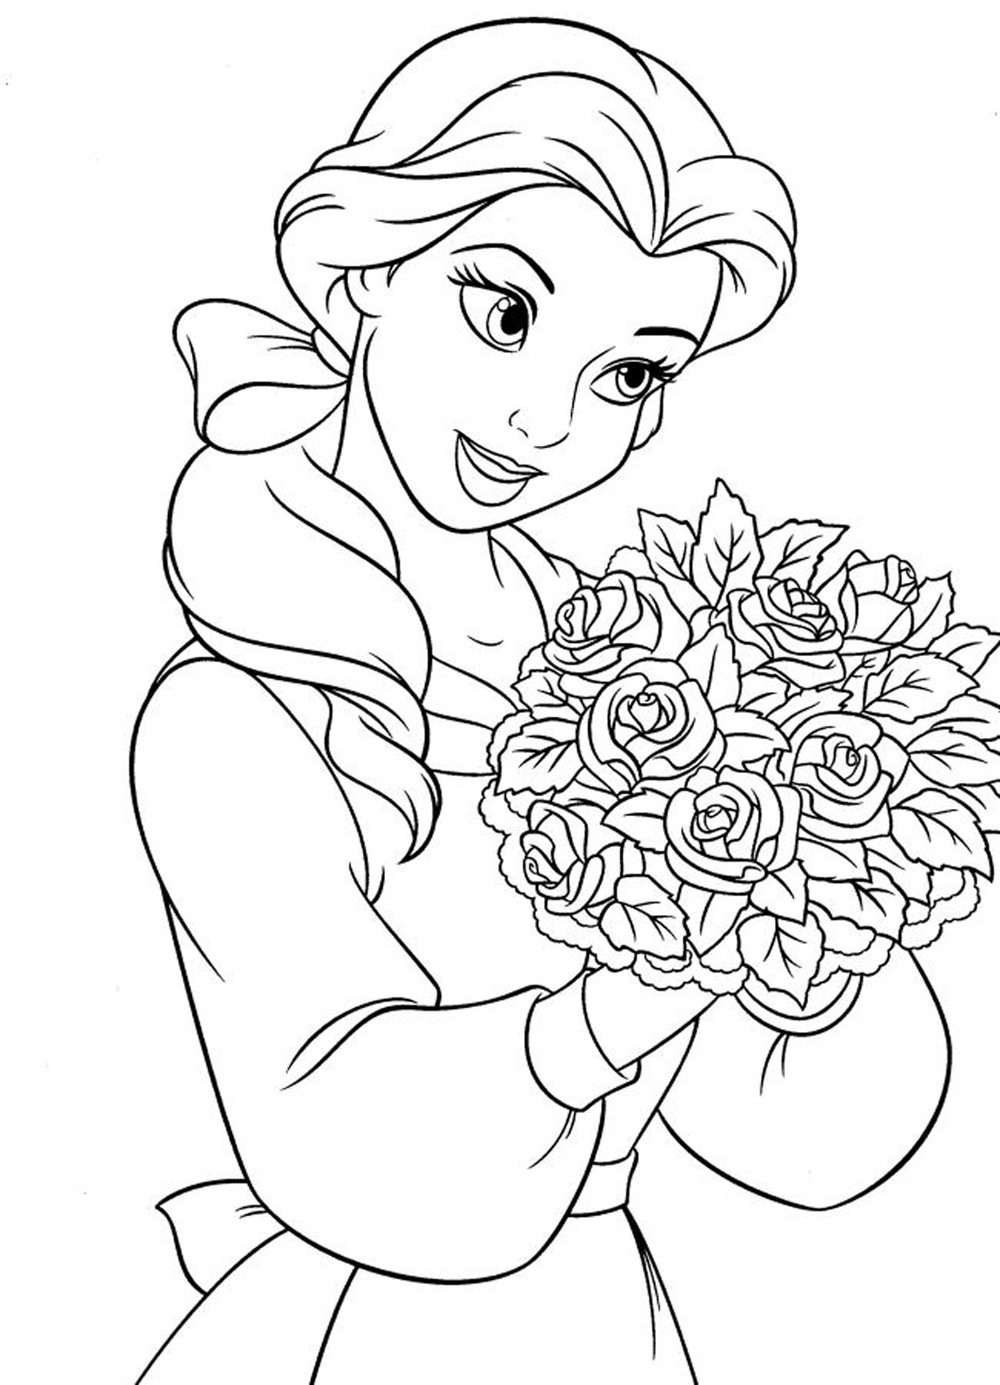 disney princess tiana coloring pages - Color Book Pages